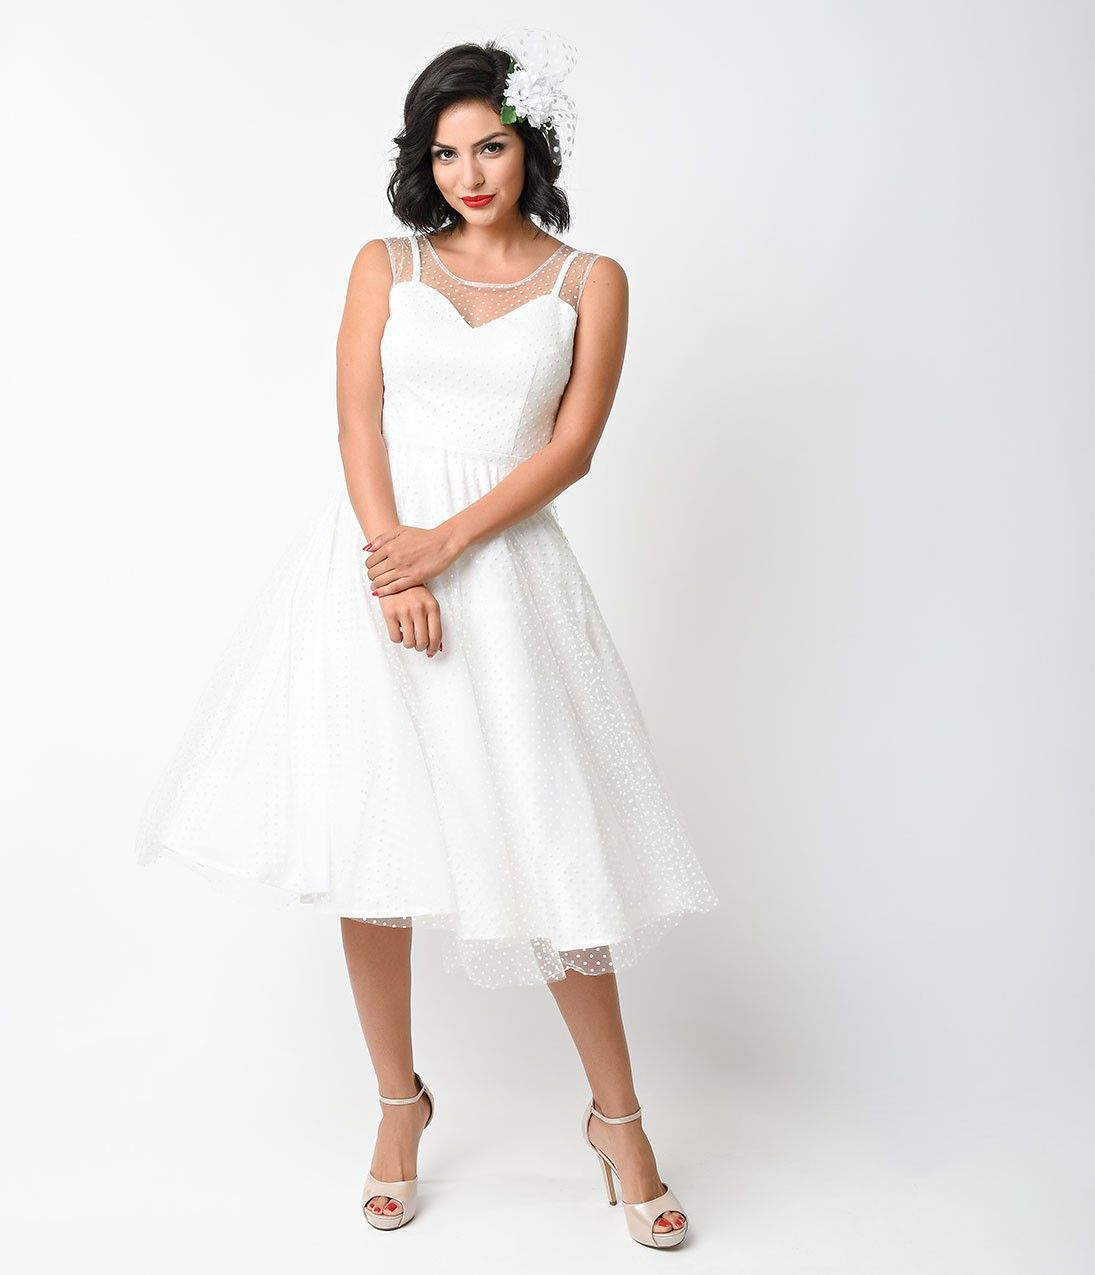 1950s style wedding dresses  Unique Vintage s Style Ivory Dot High Society Swing Dress